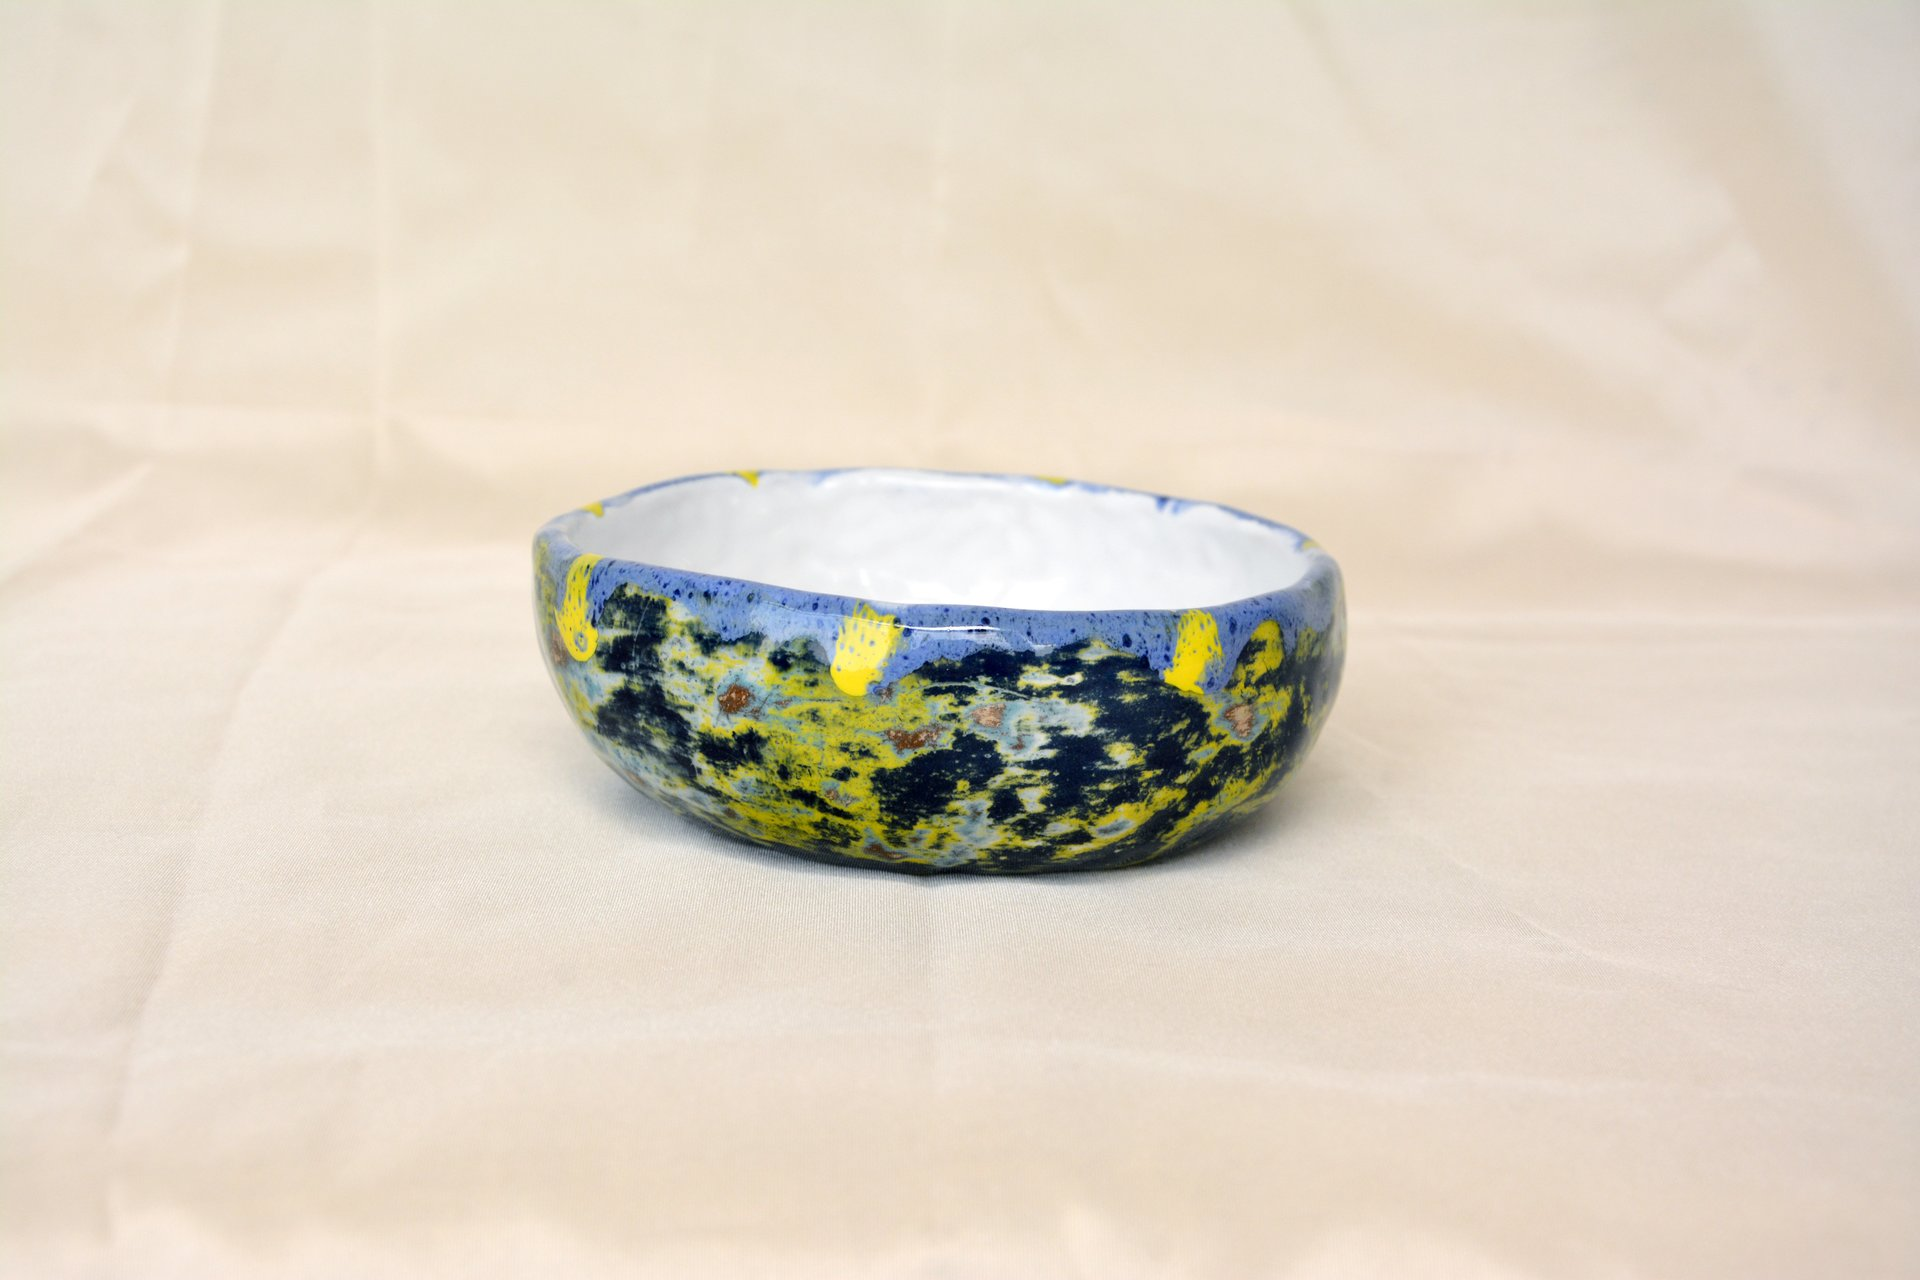 Multilayered dark-blue - Сeramic Plates, diameter - 11,5 cm, height - 4 cm, photo 1 of 3.